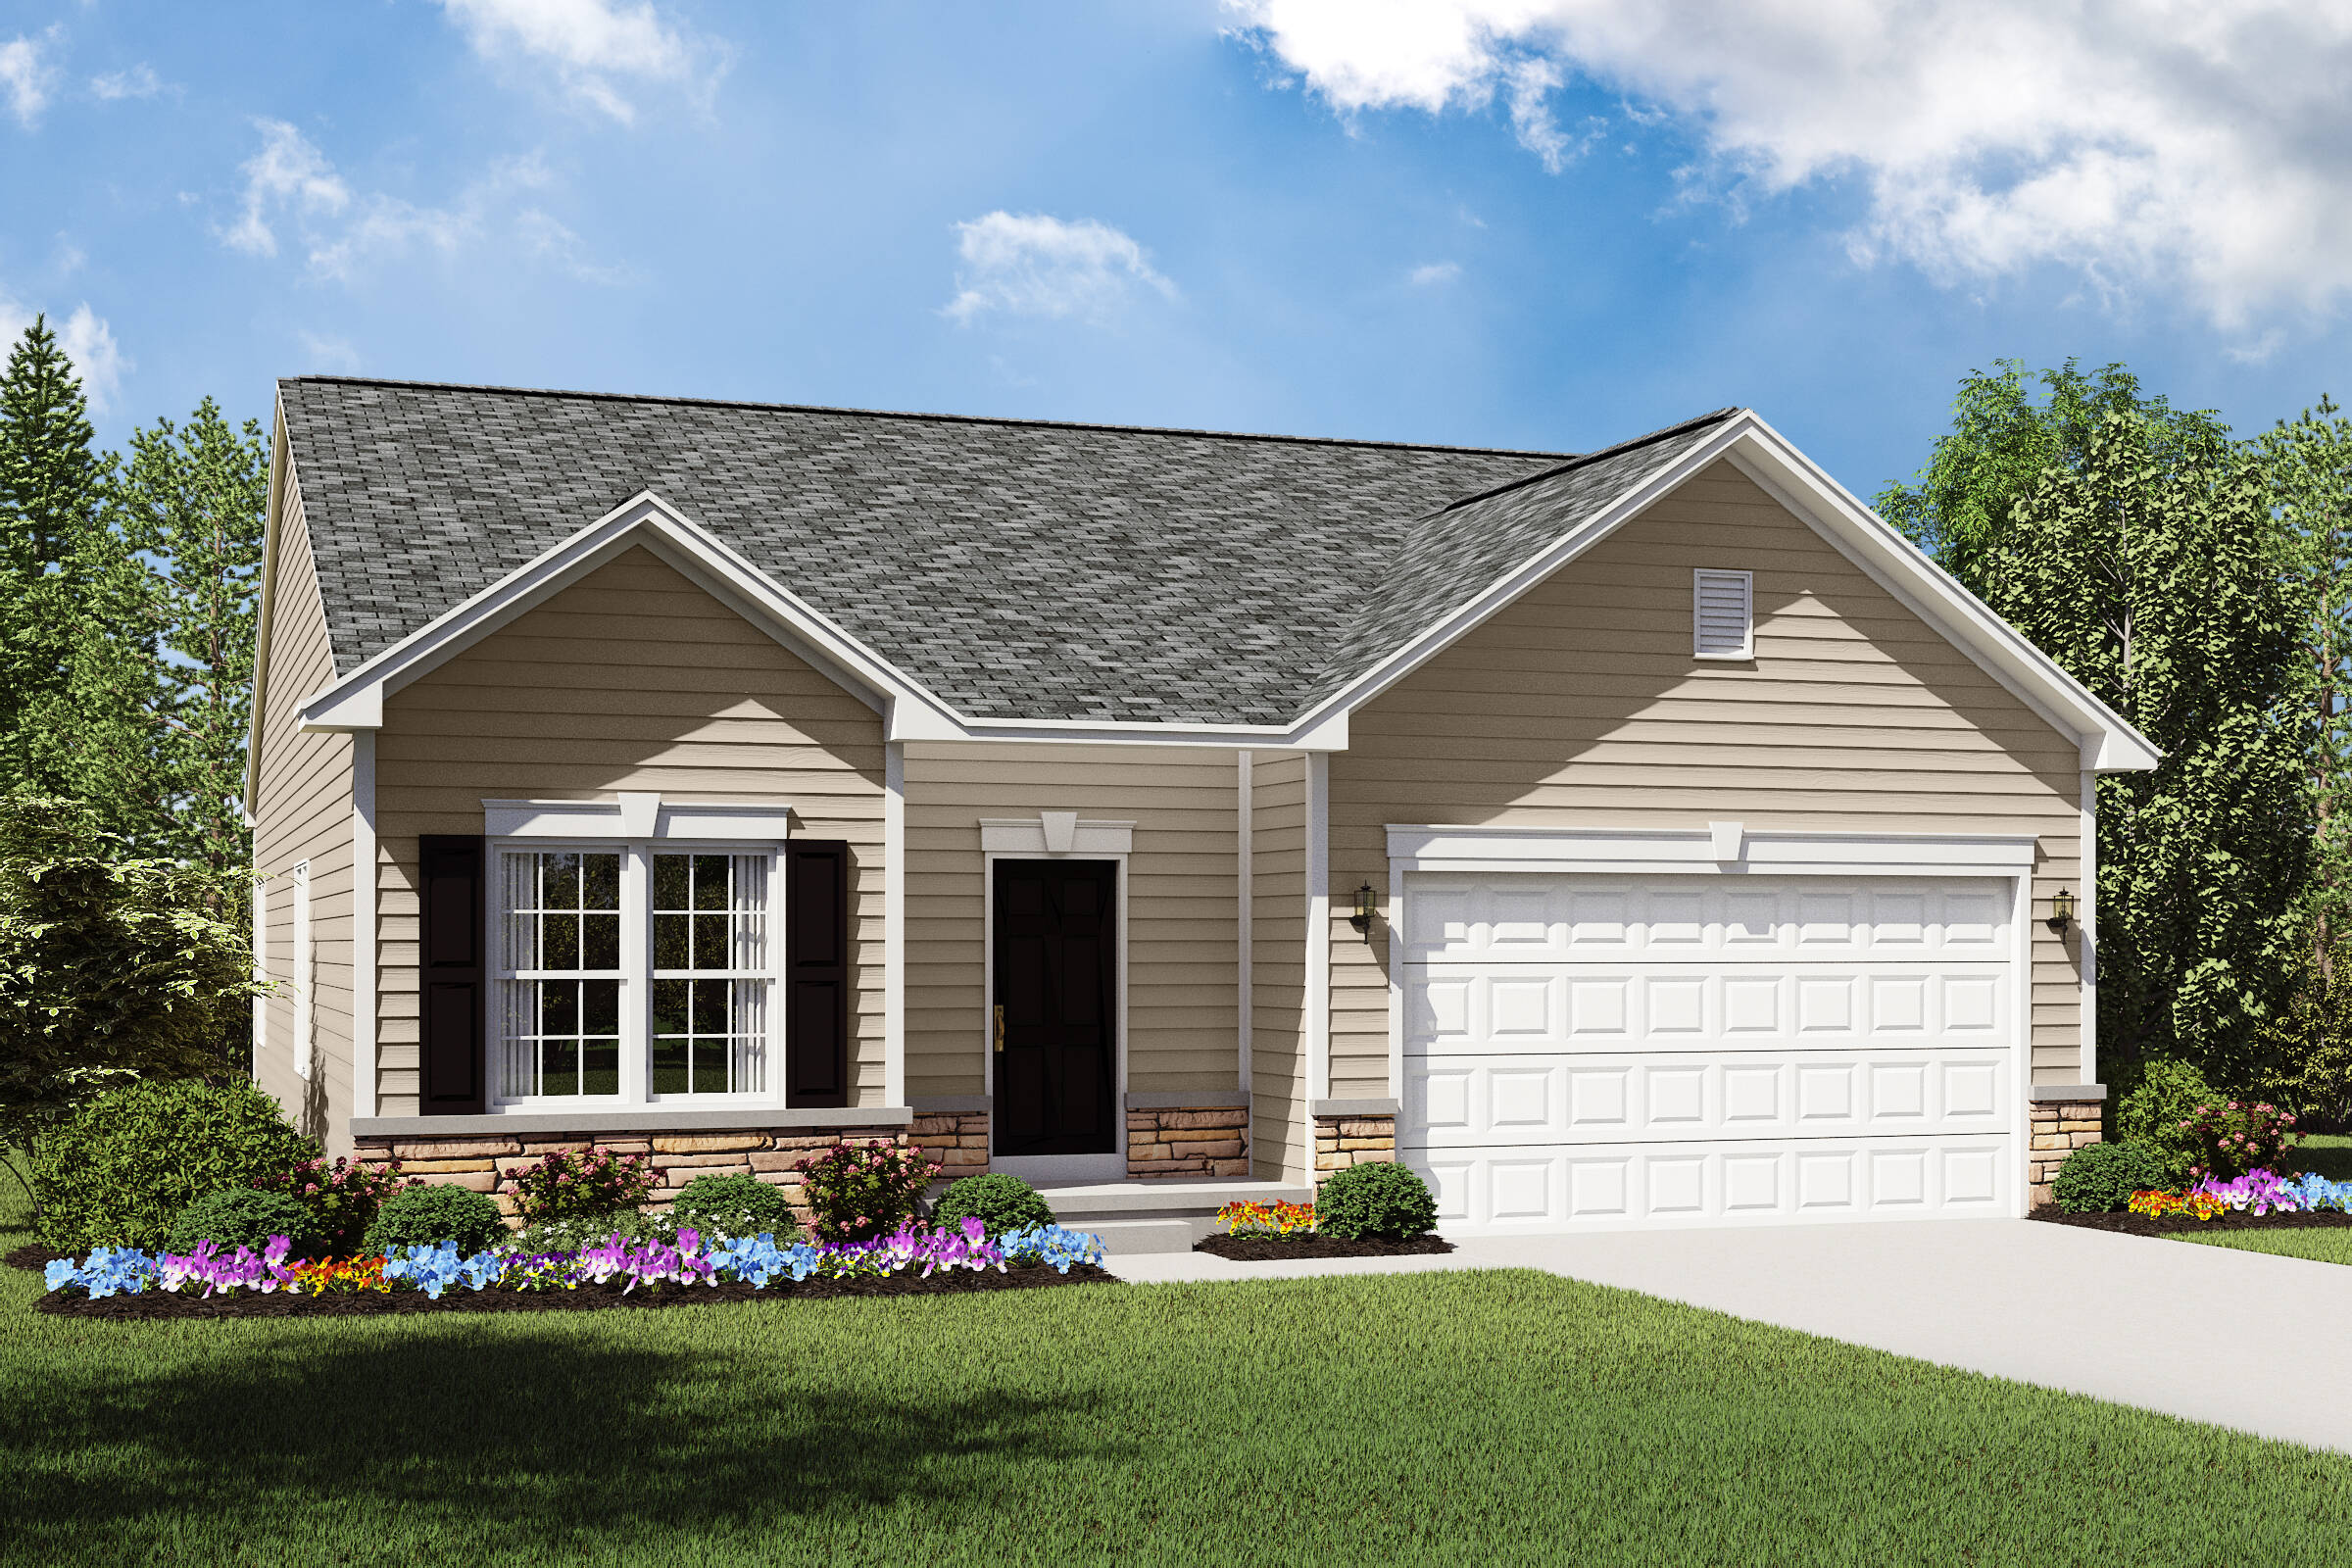 bedford bt new ranch homes northeast ohio